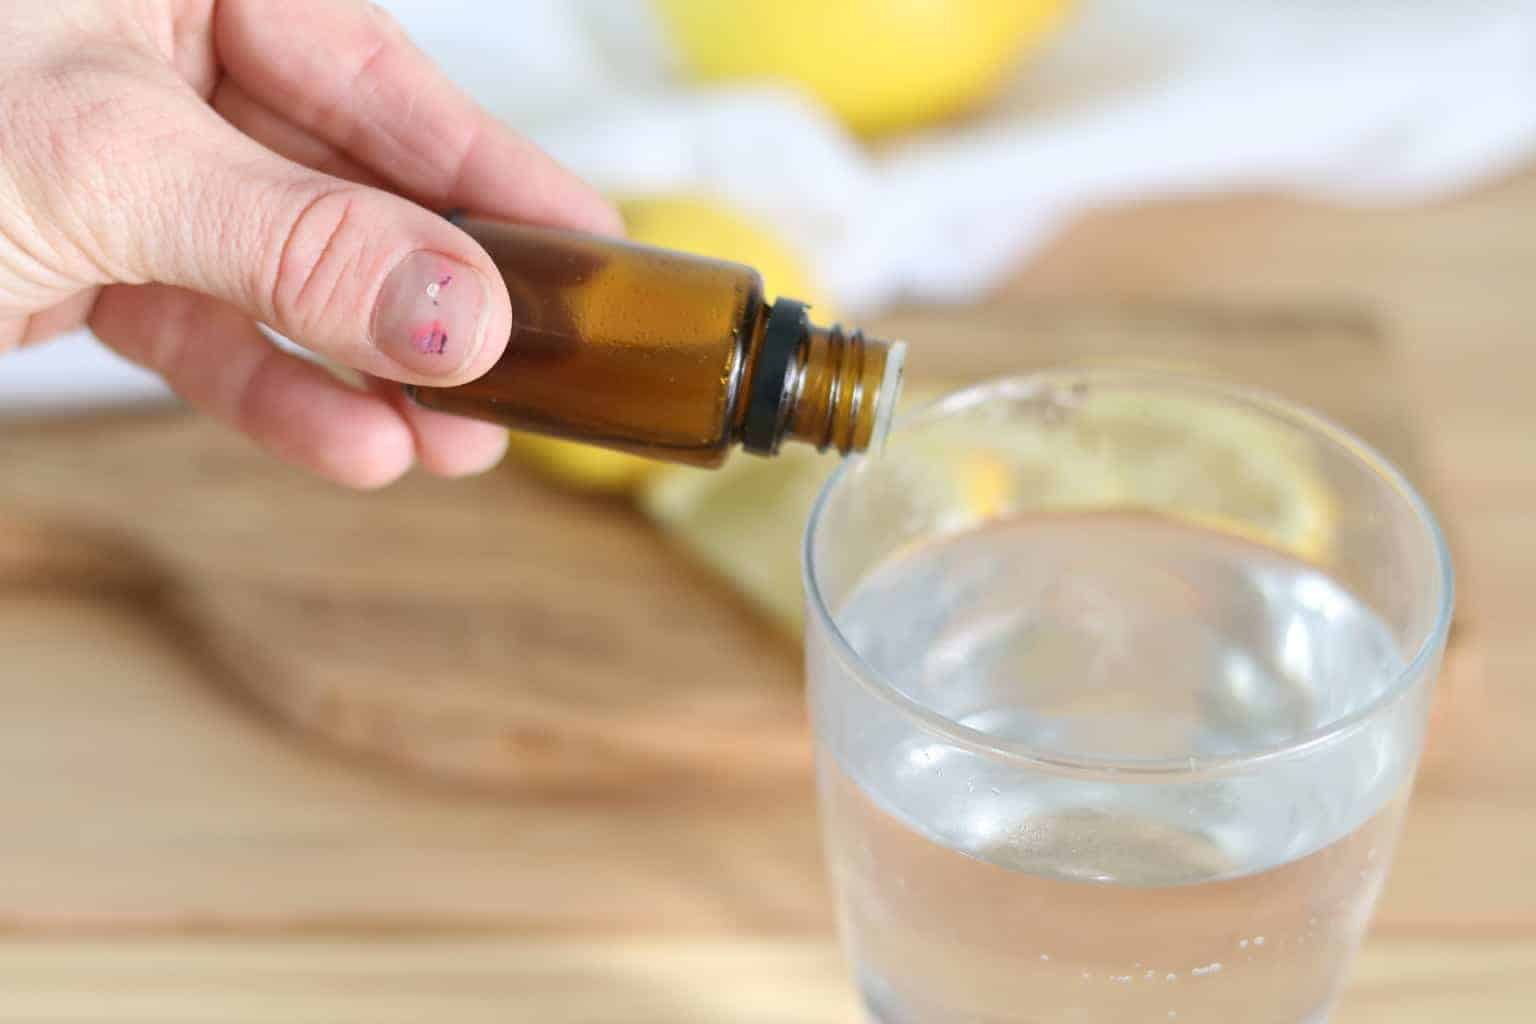 If you are using high quality, pure, organic, therapeutic grade essential oils, like Doterra, you can take lemon essential oil internally. Add 1-2 drops to 4 ounces of water, make a vegetable capsule by adding 1-3 drops of essential oil, or simply drop the essential oil under the tongue.